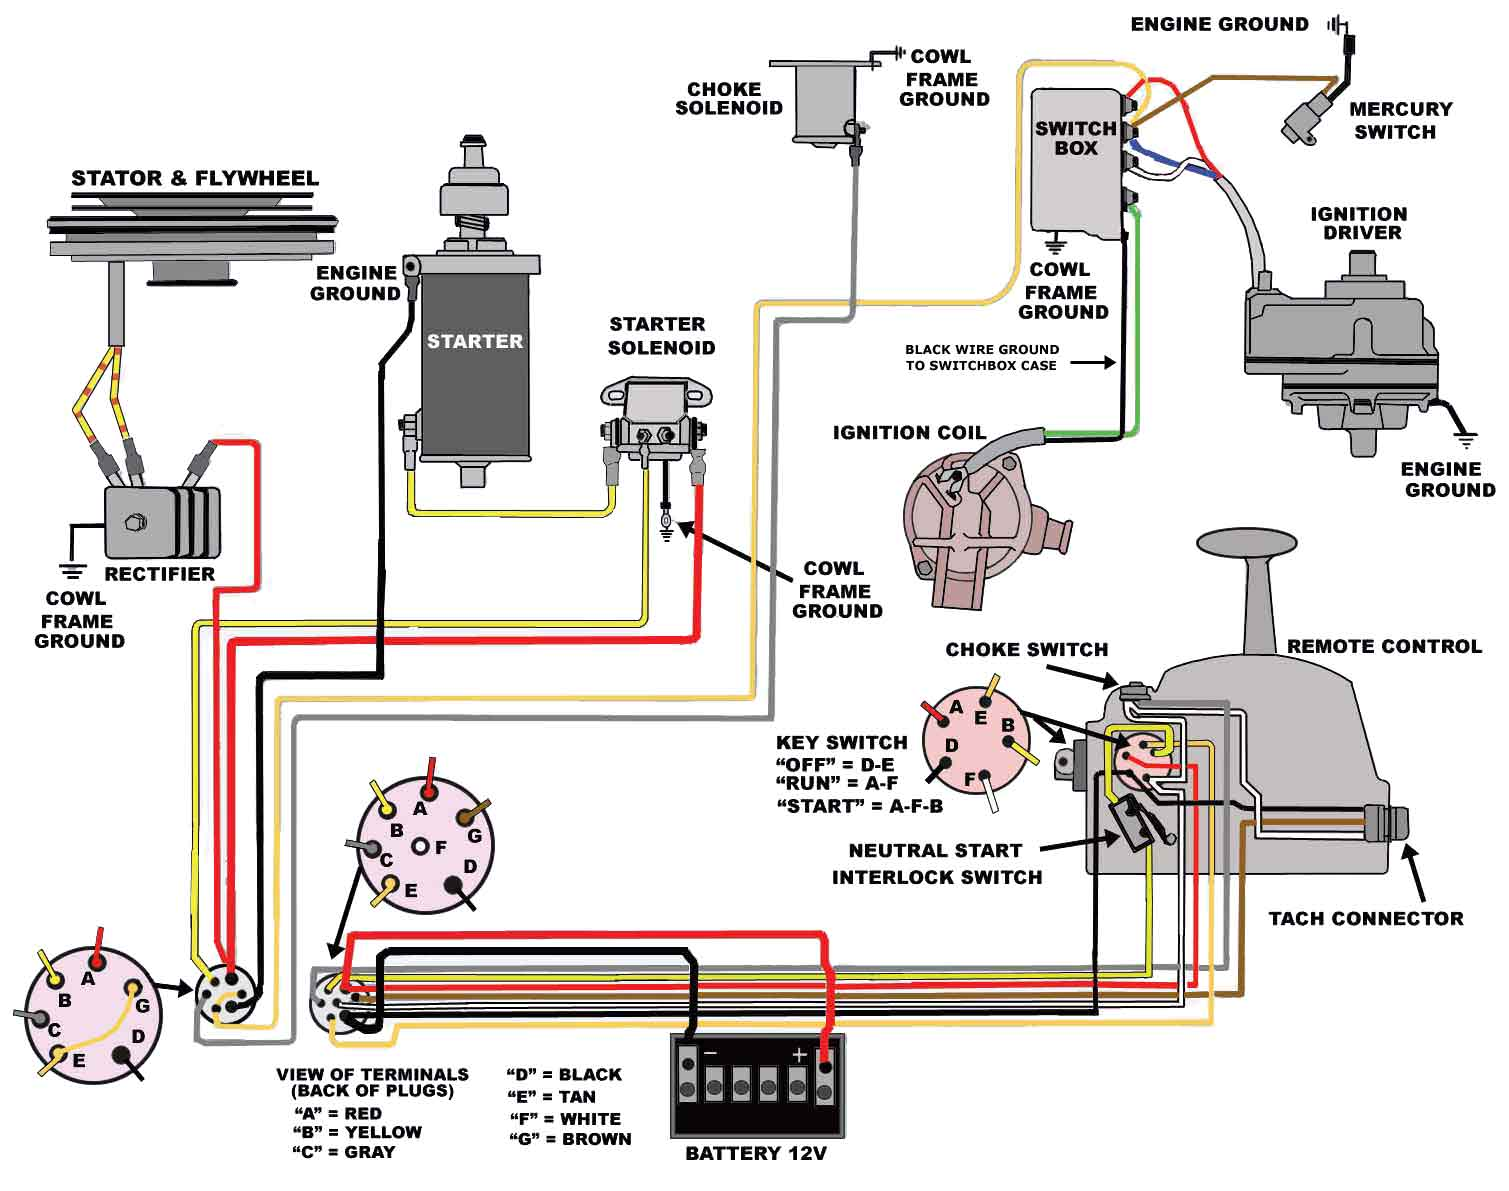 wiring diagram for mercury ignition switch wiring diagram de rh 6 rnbgh juliusdoerner de  mercury outboard ignition switch wiring diagram